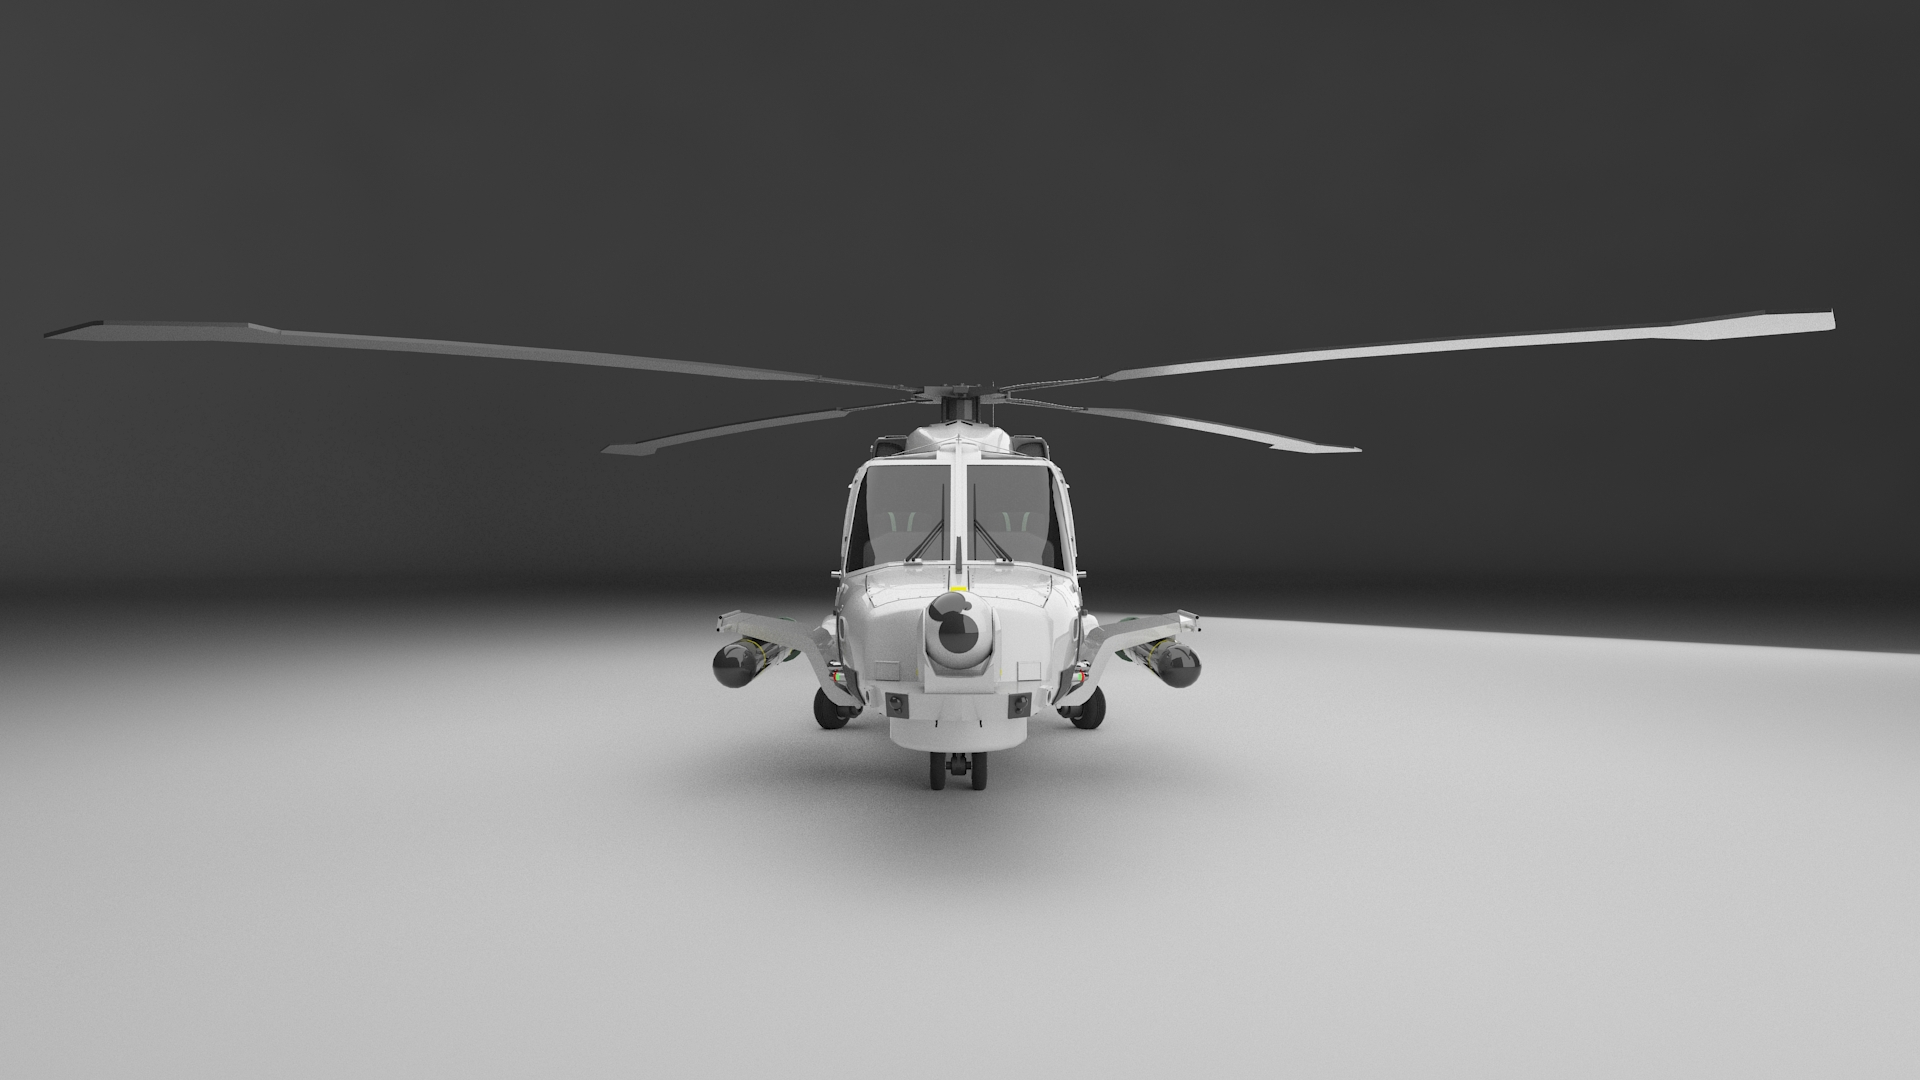 helicopter as seen in Olive Learning's serious gaming powered by Oculus Rift